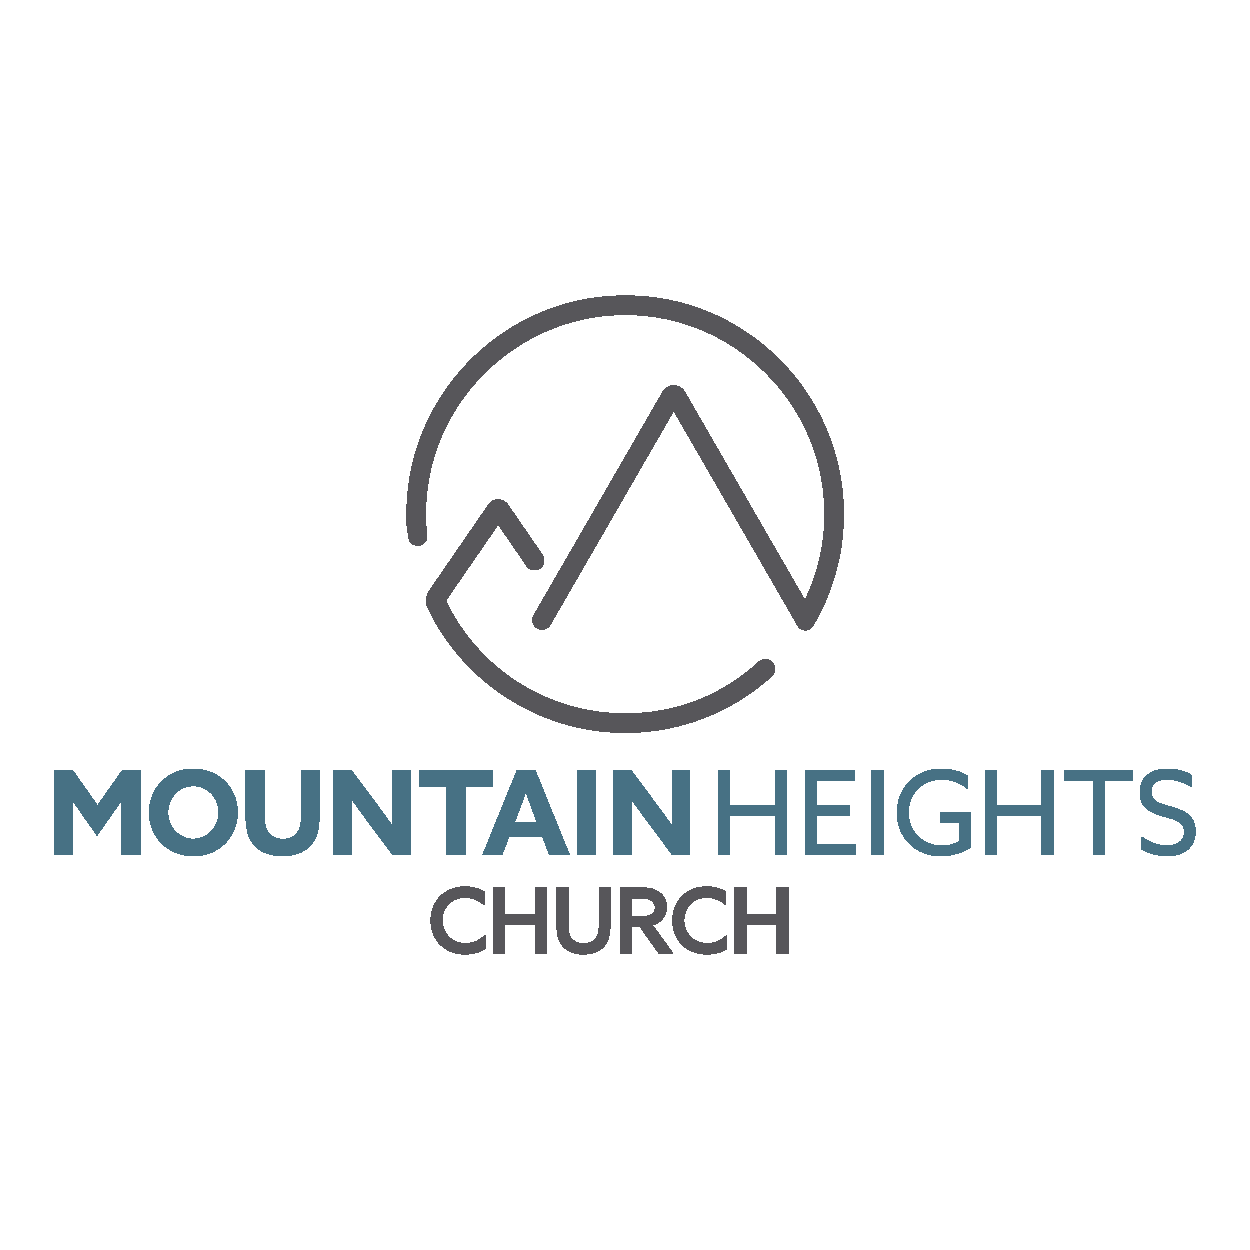 Mountain Heights Church